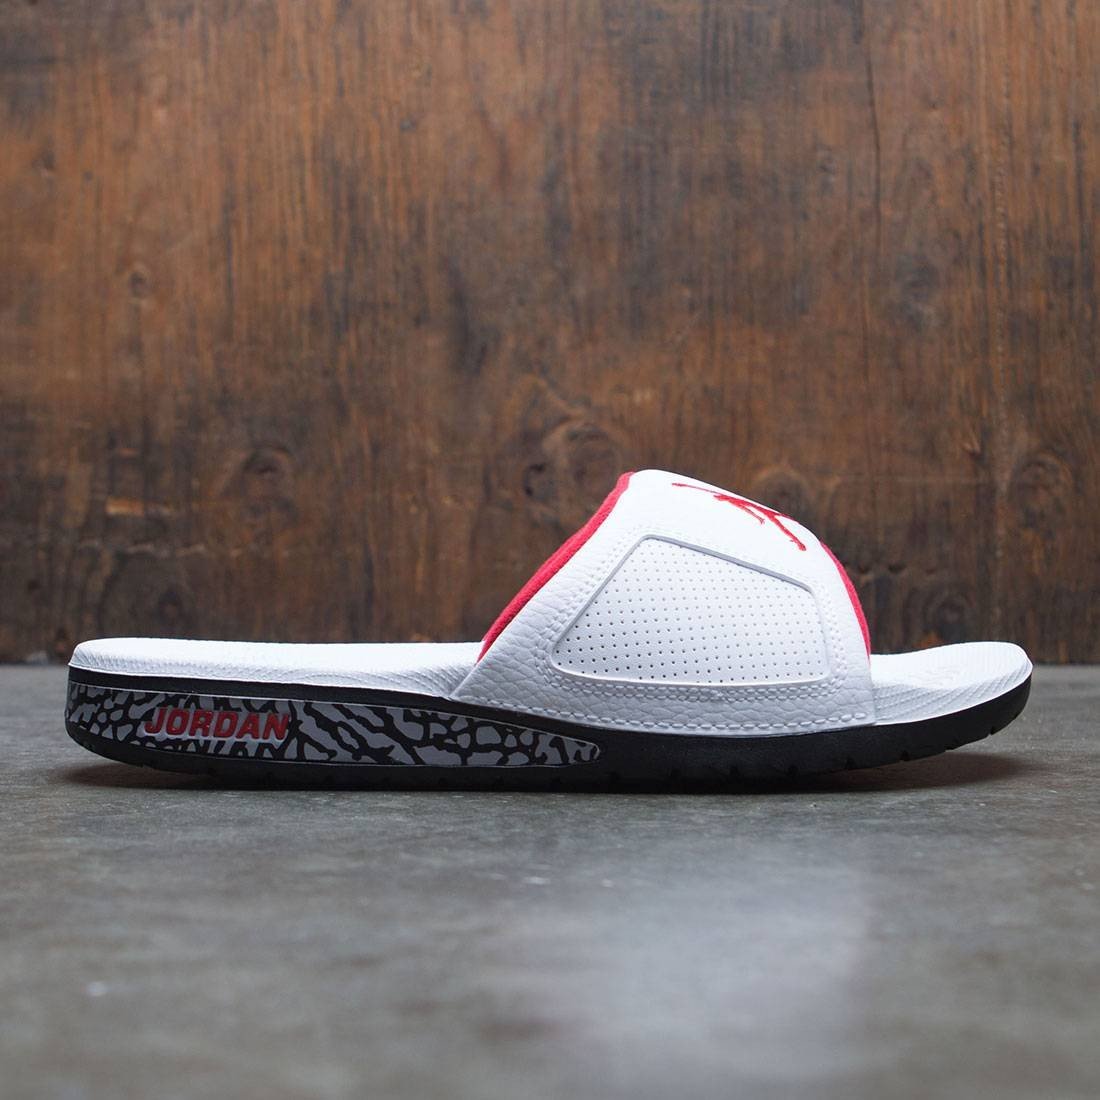 97ba3f3e7b40 jordan men jordan hydro iii retro slide white university red black cement  grey